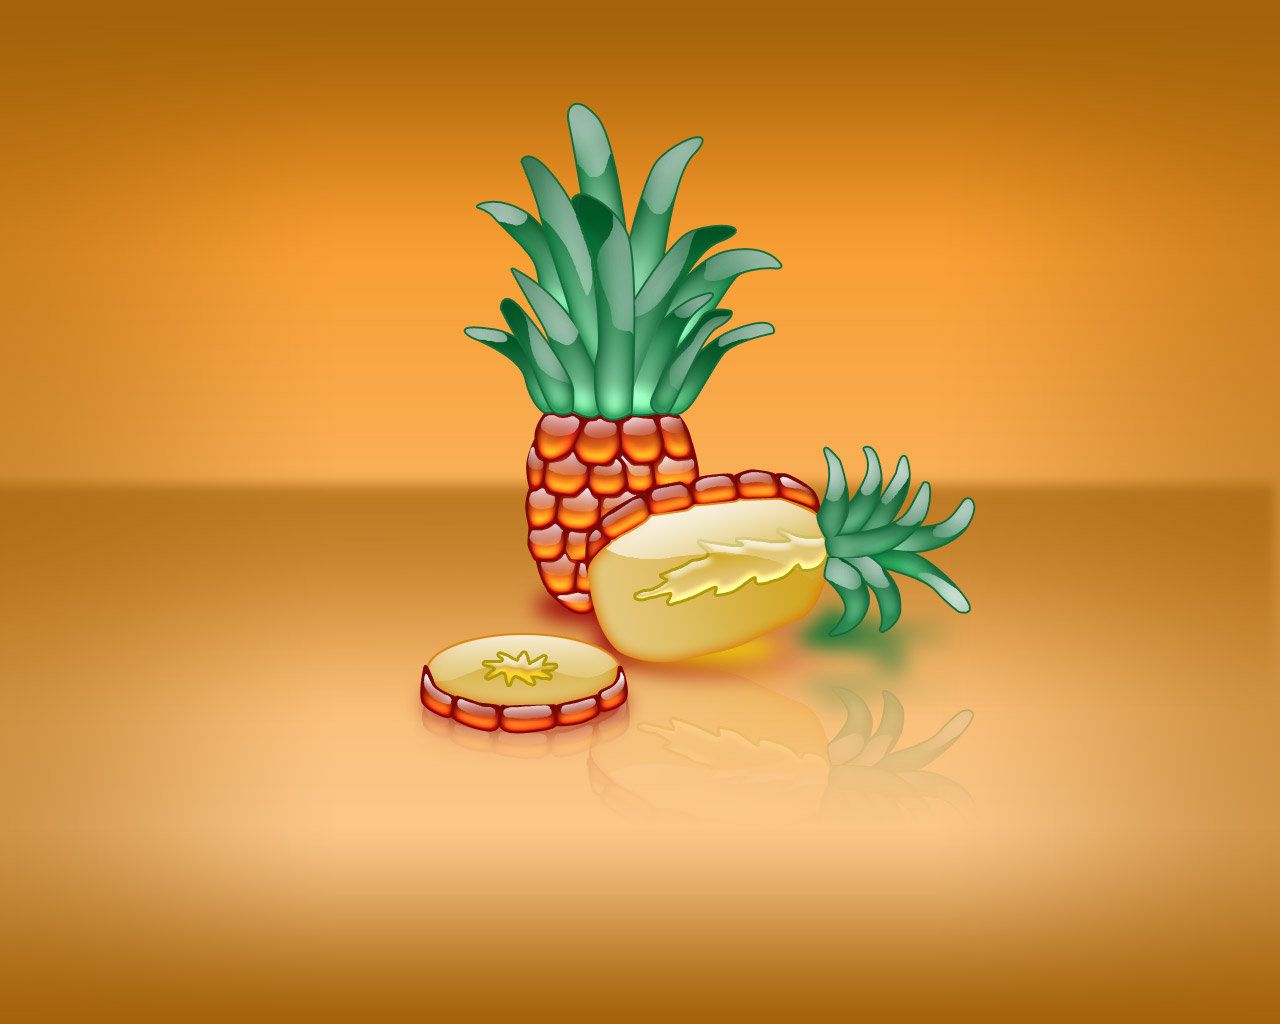 Aqua Mango Wallpaper Abstract D Wallpapers in jpg format for free